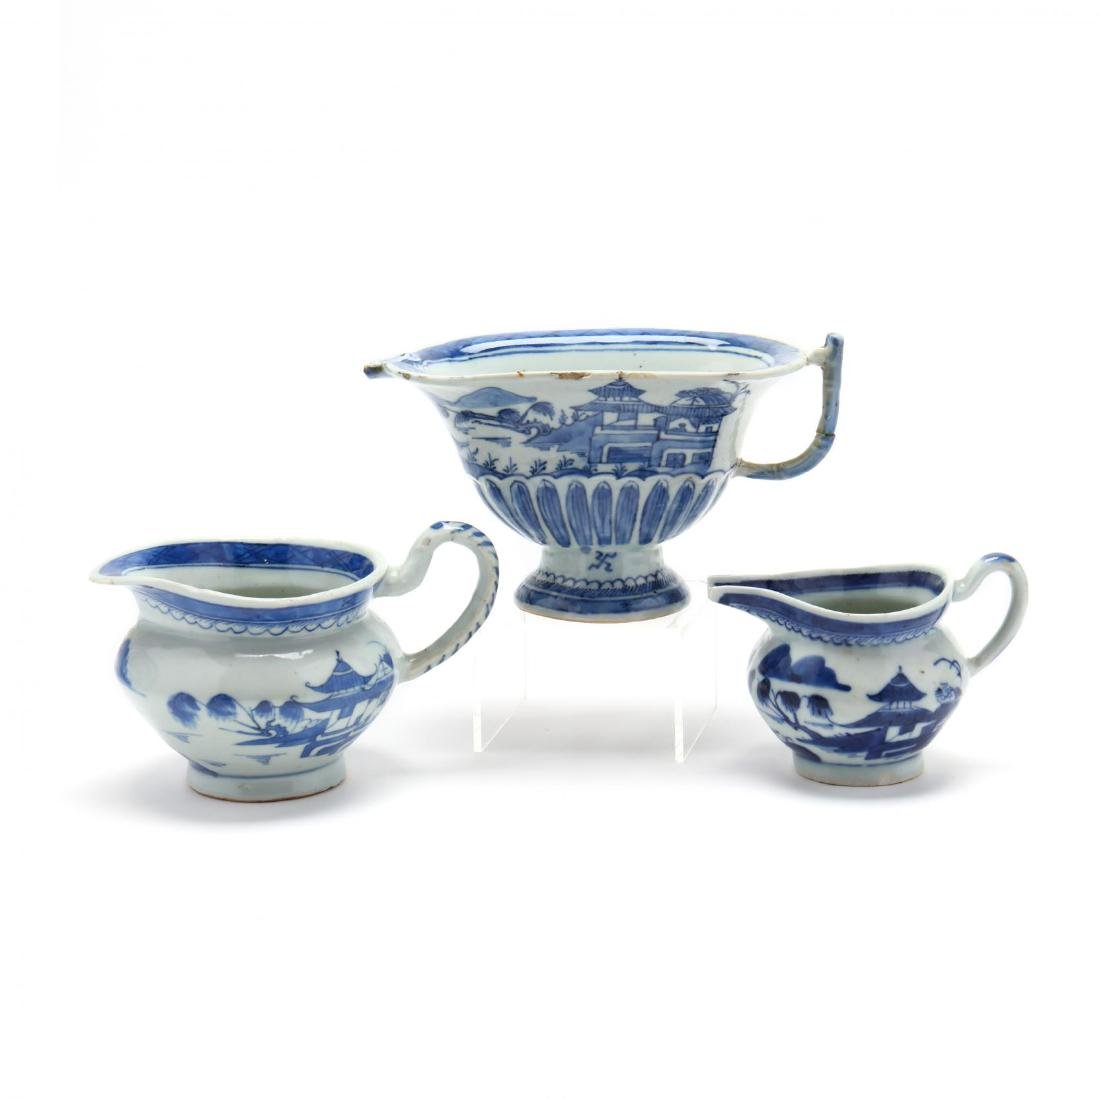 A Group of Canton Export Porcelain - 3